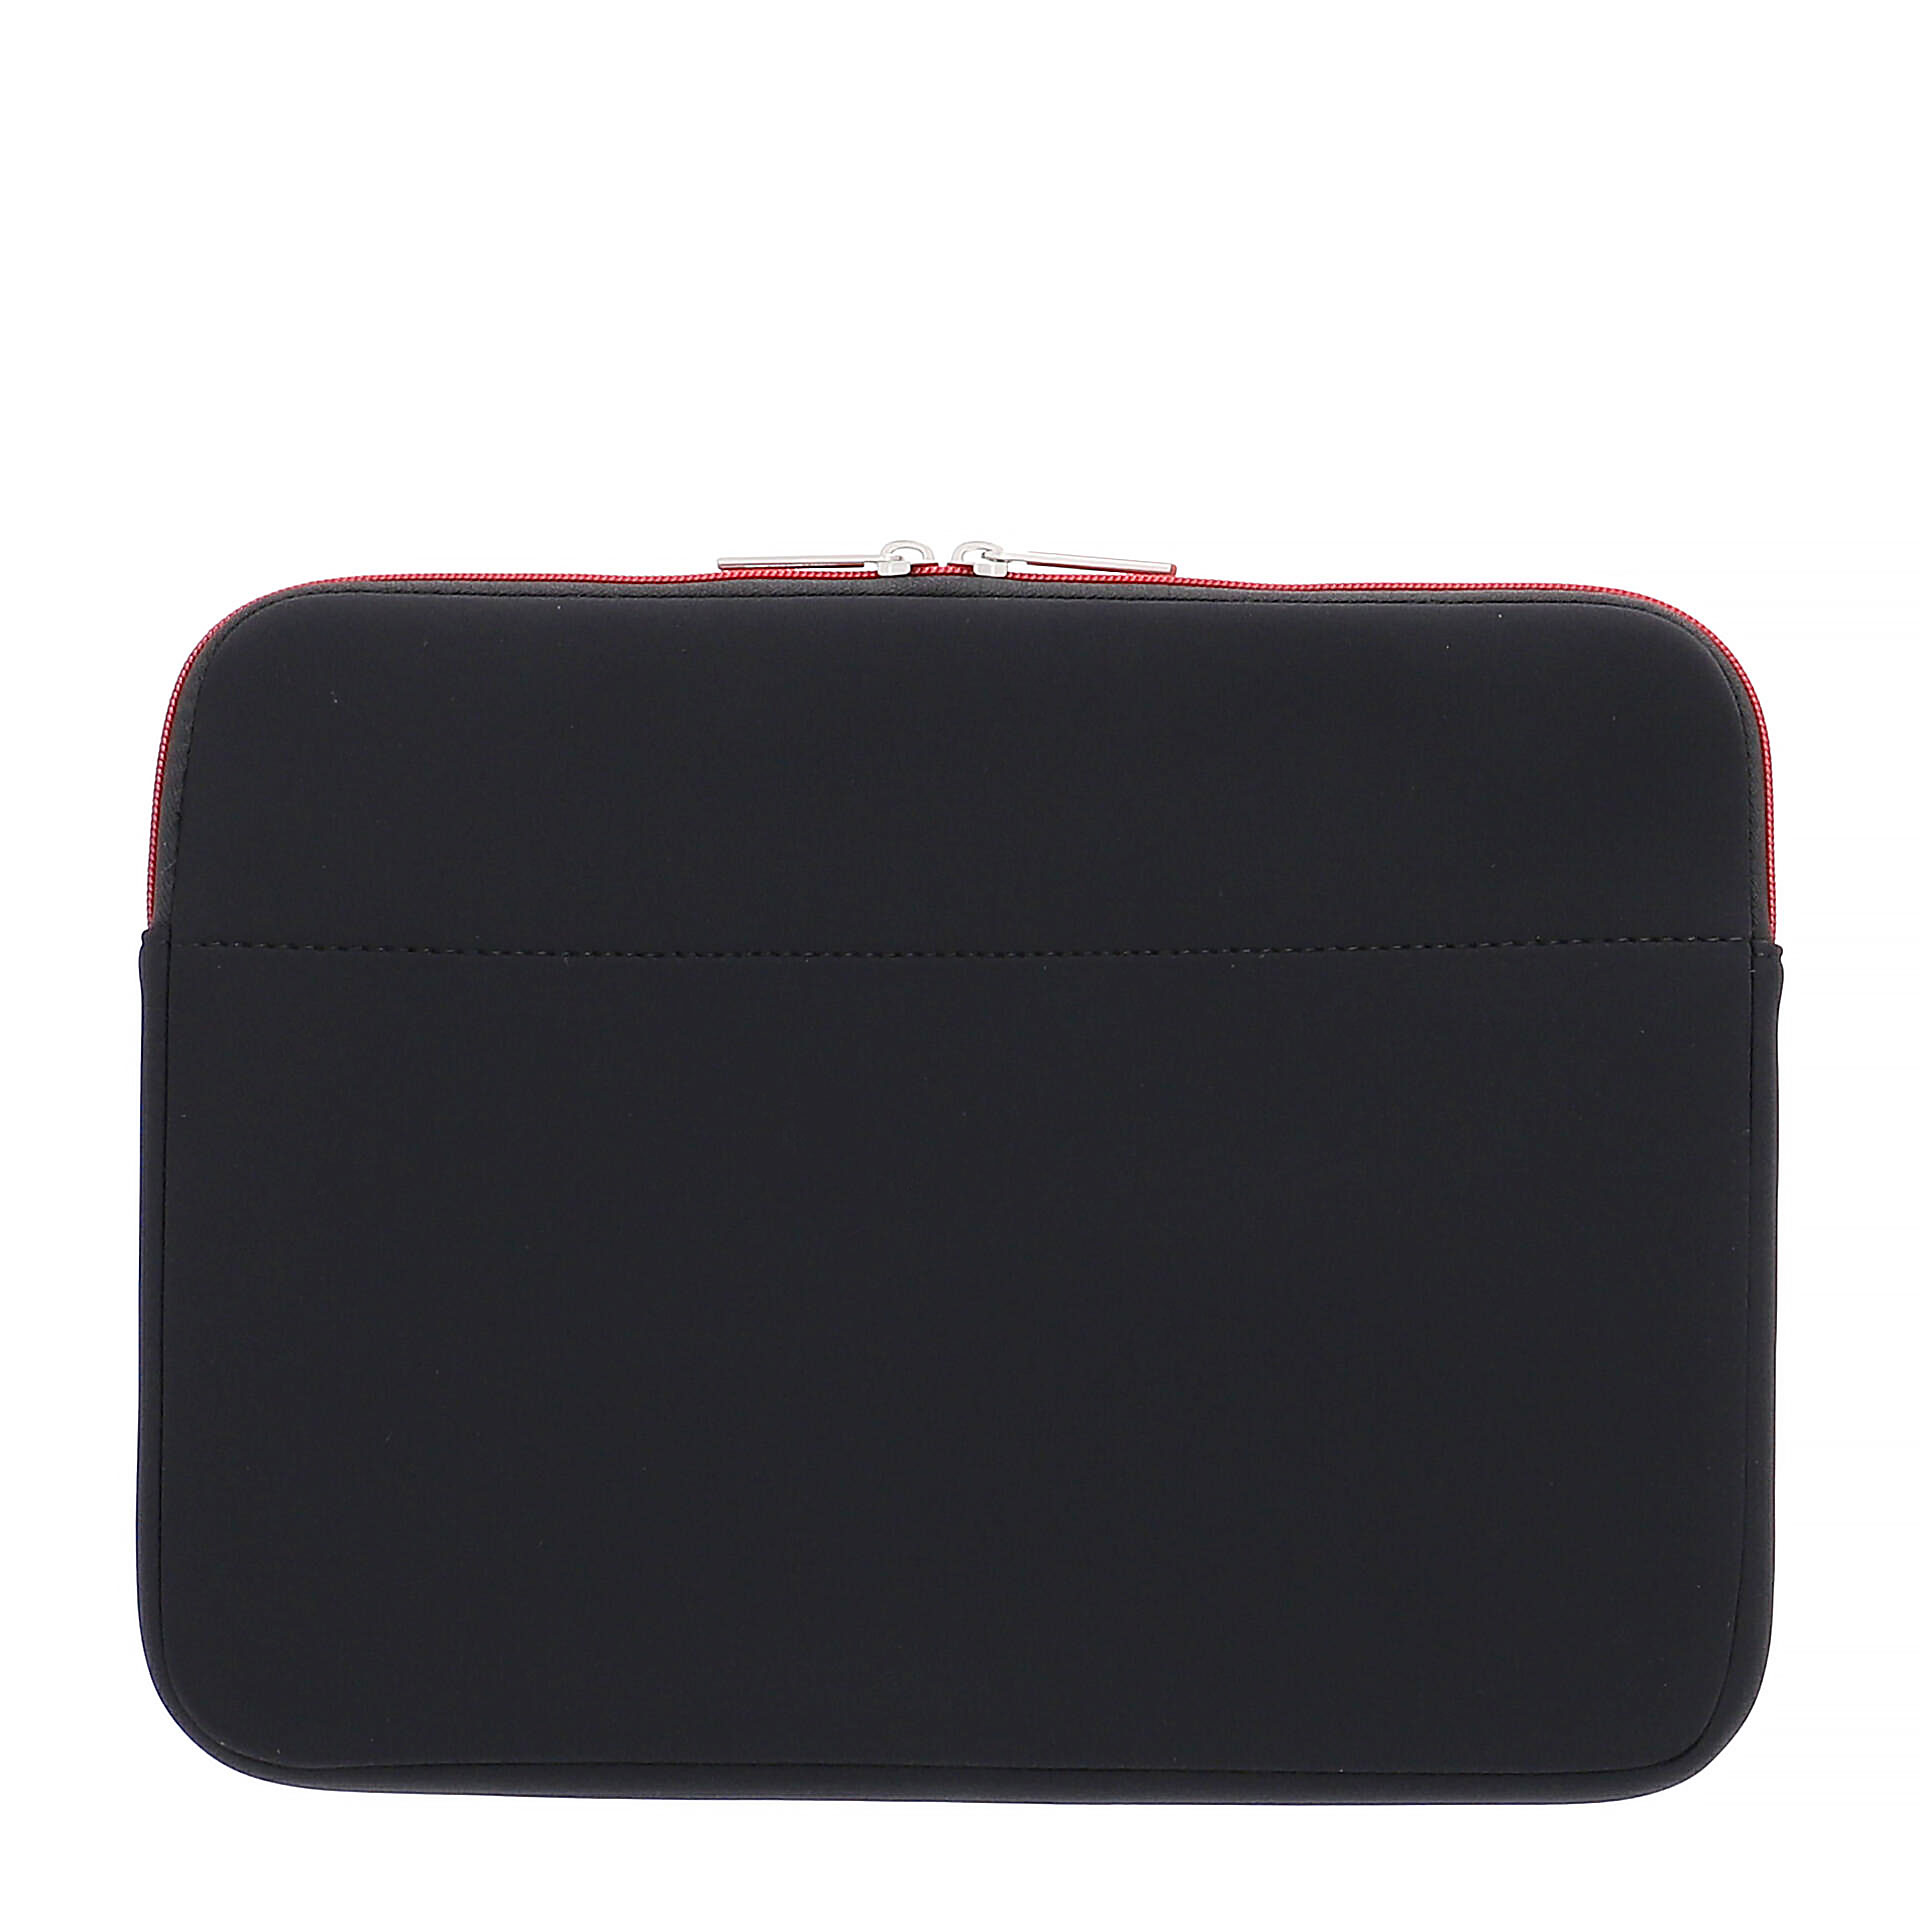 "Airglow Laptop Hülle 13.3"" black/red"